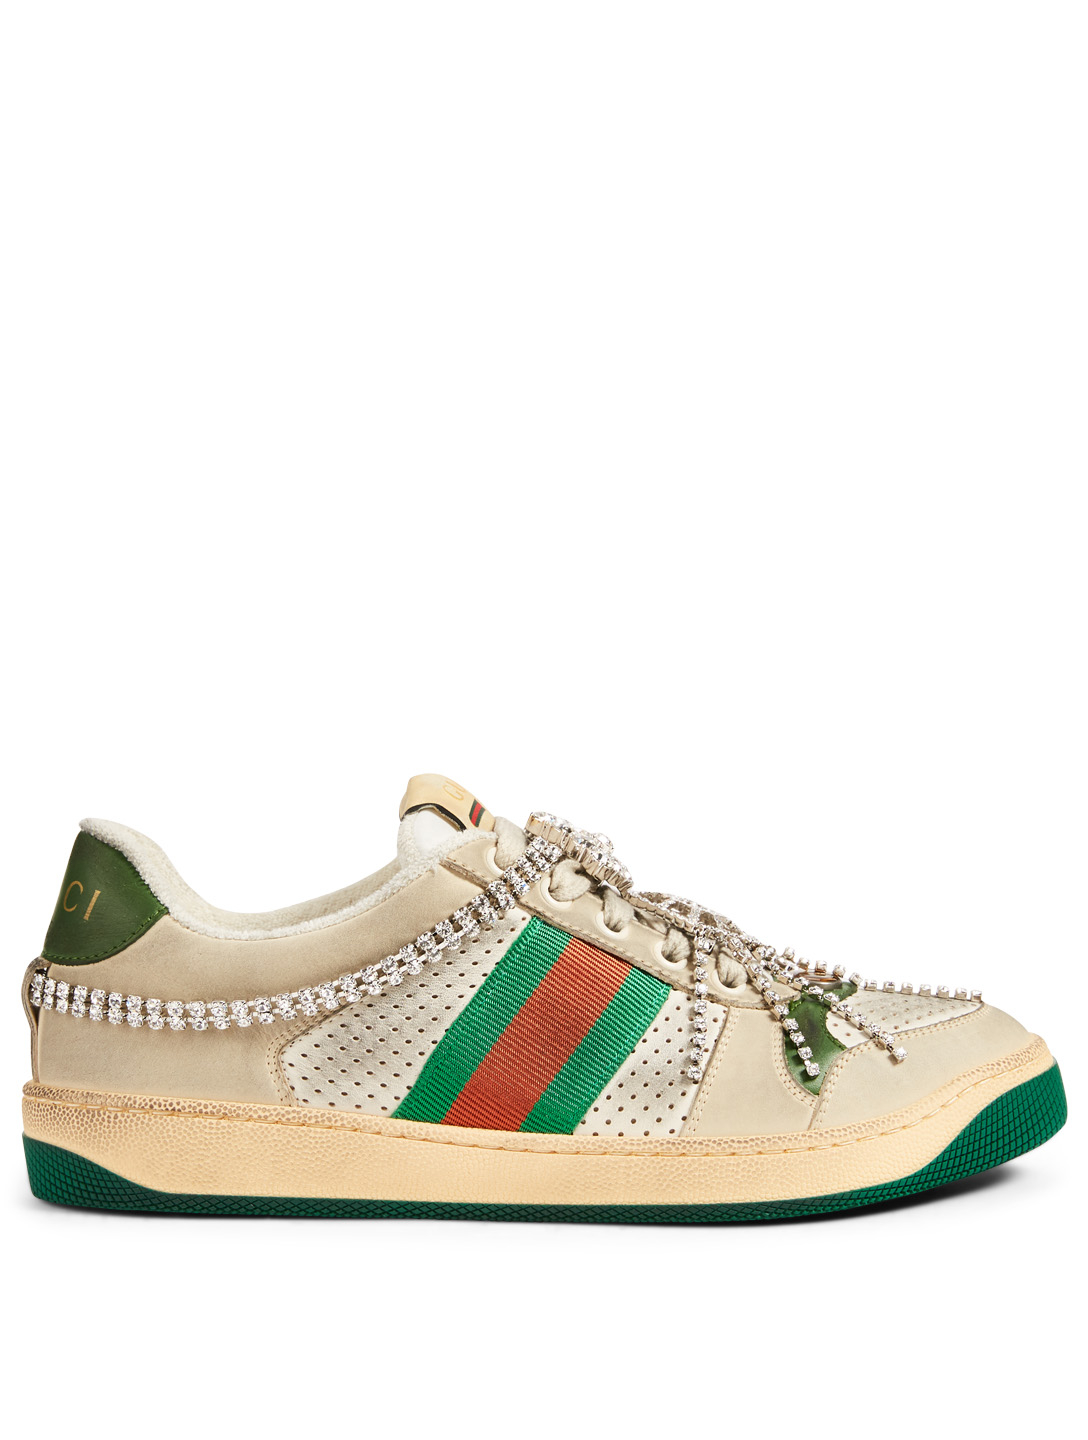 eaf30099aa GUCCI Screener Leather Sneakers With Crystals | Holt Renfrew